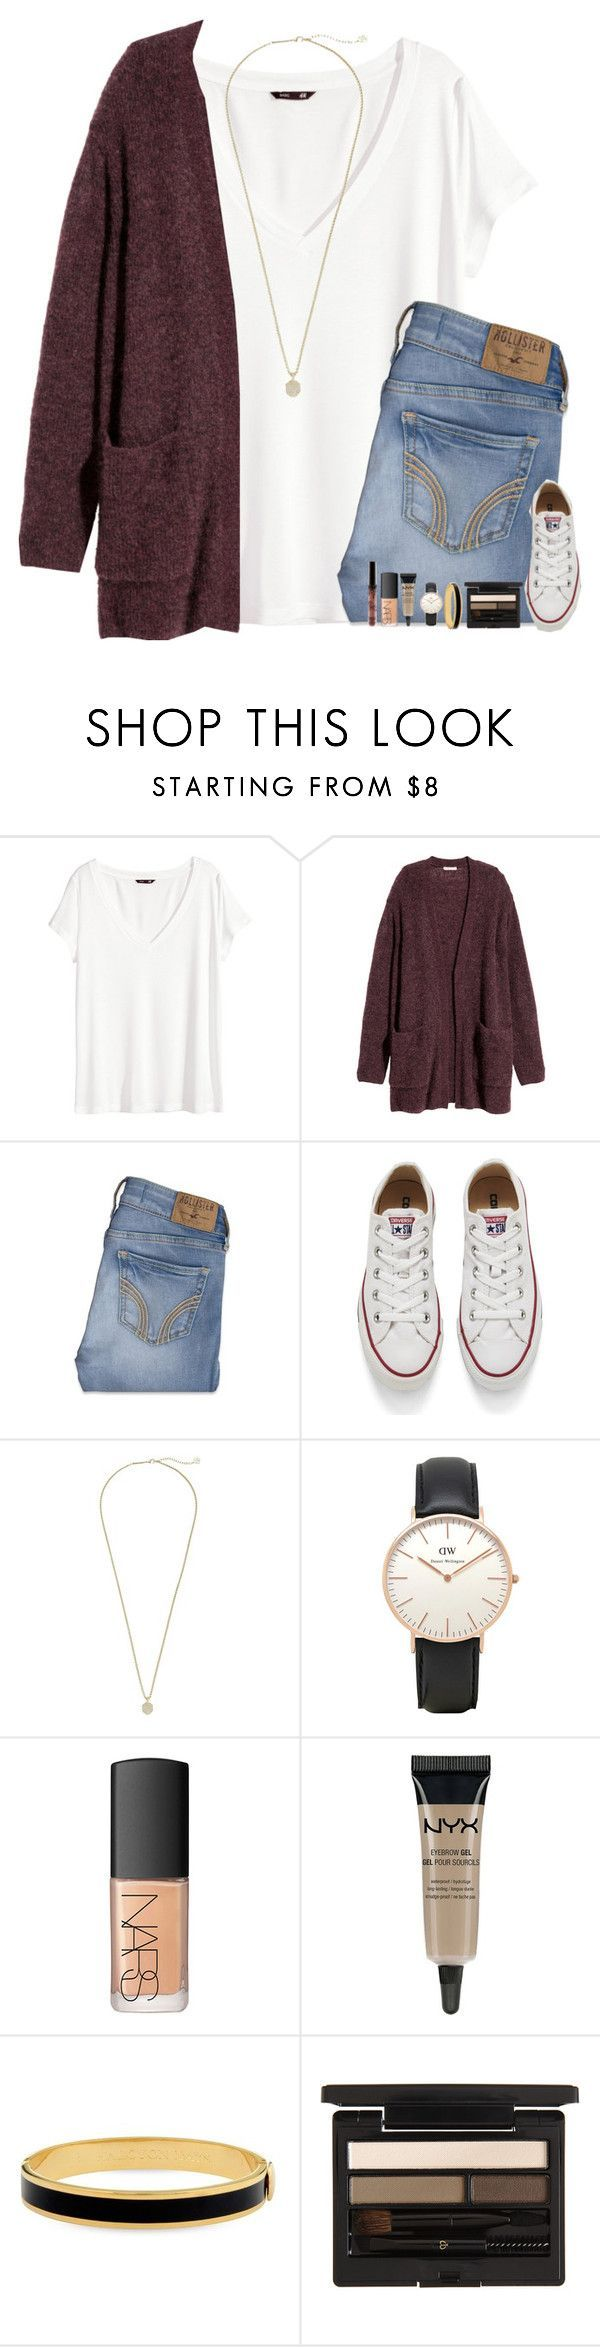 """When Will I Start Relating To Love Songs?"" by evieleet ❤ liked on Polyvore featuring H&M, Hollister Co., Converse, Kendra Scott, Topshop, NARS Cosmetics, NYX, Halcyon Days and Clé de Peau Beauté"